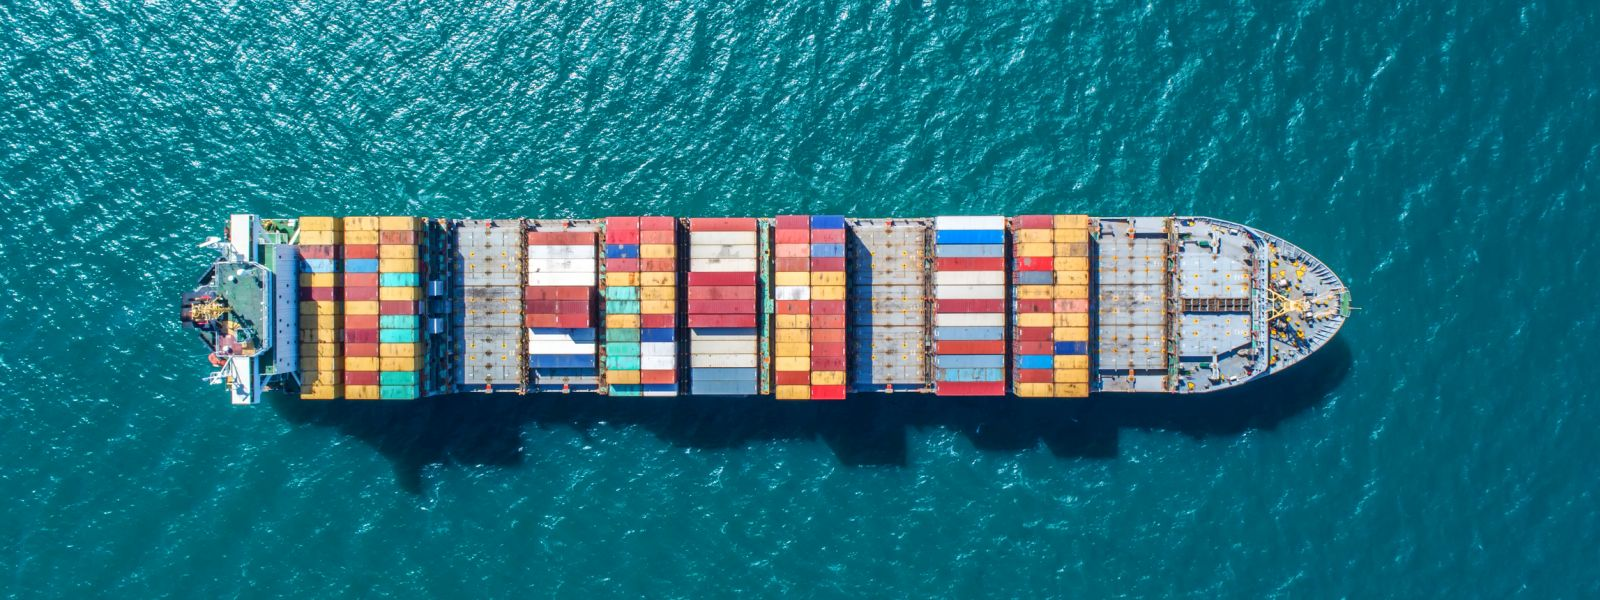 Container ship with colourful shipping containers viewed from above